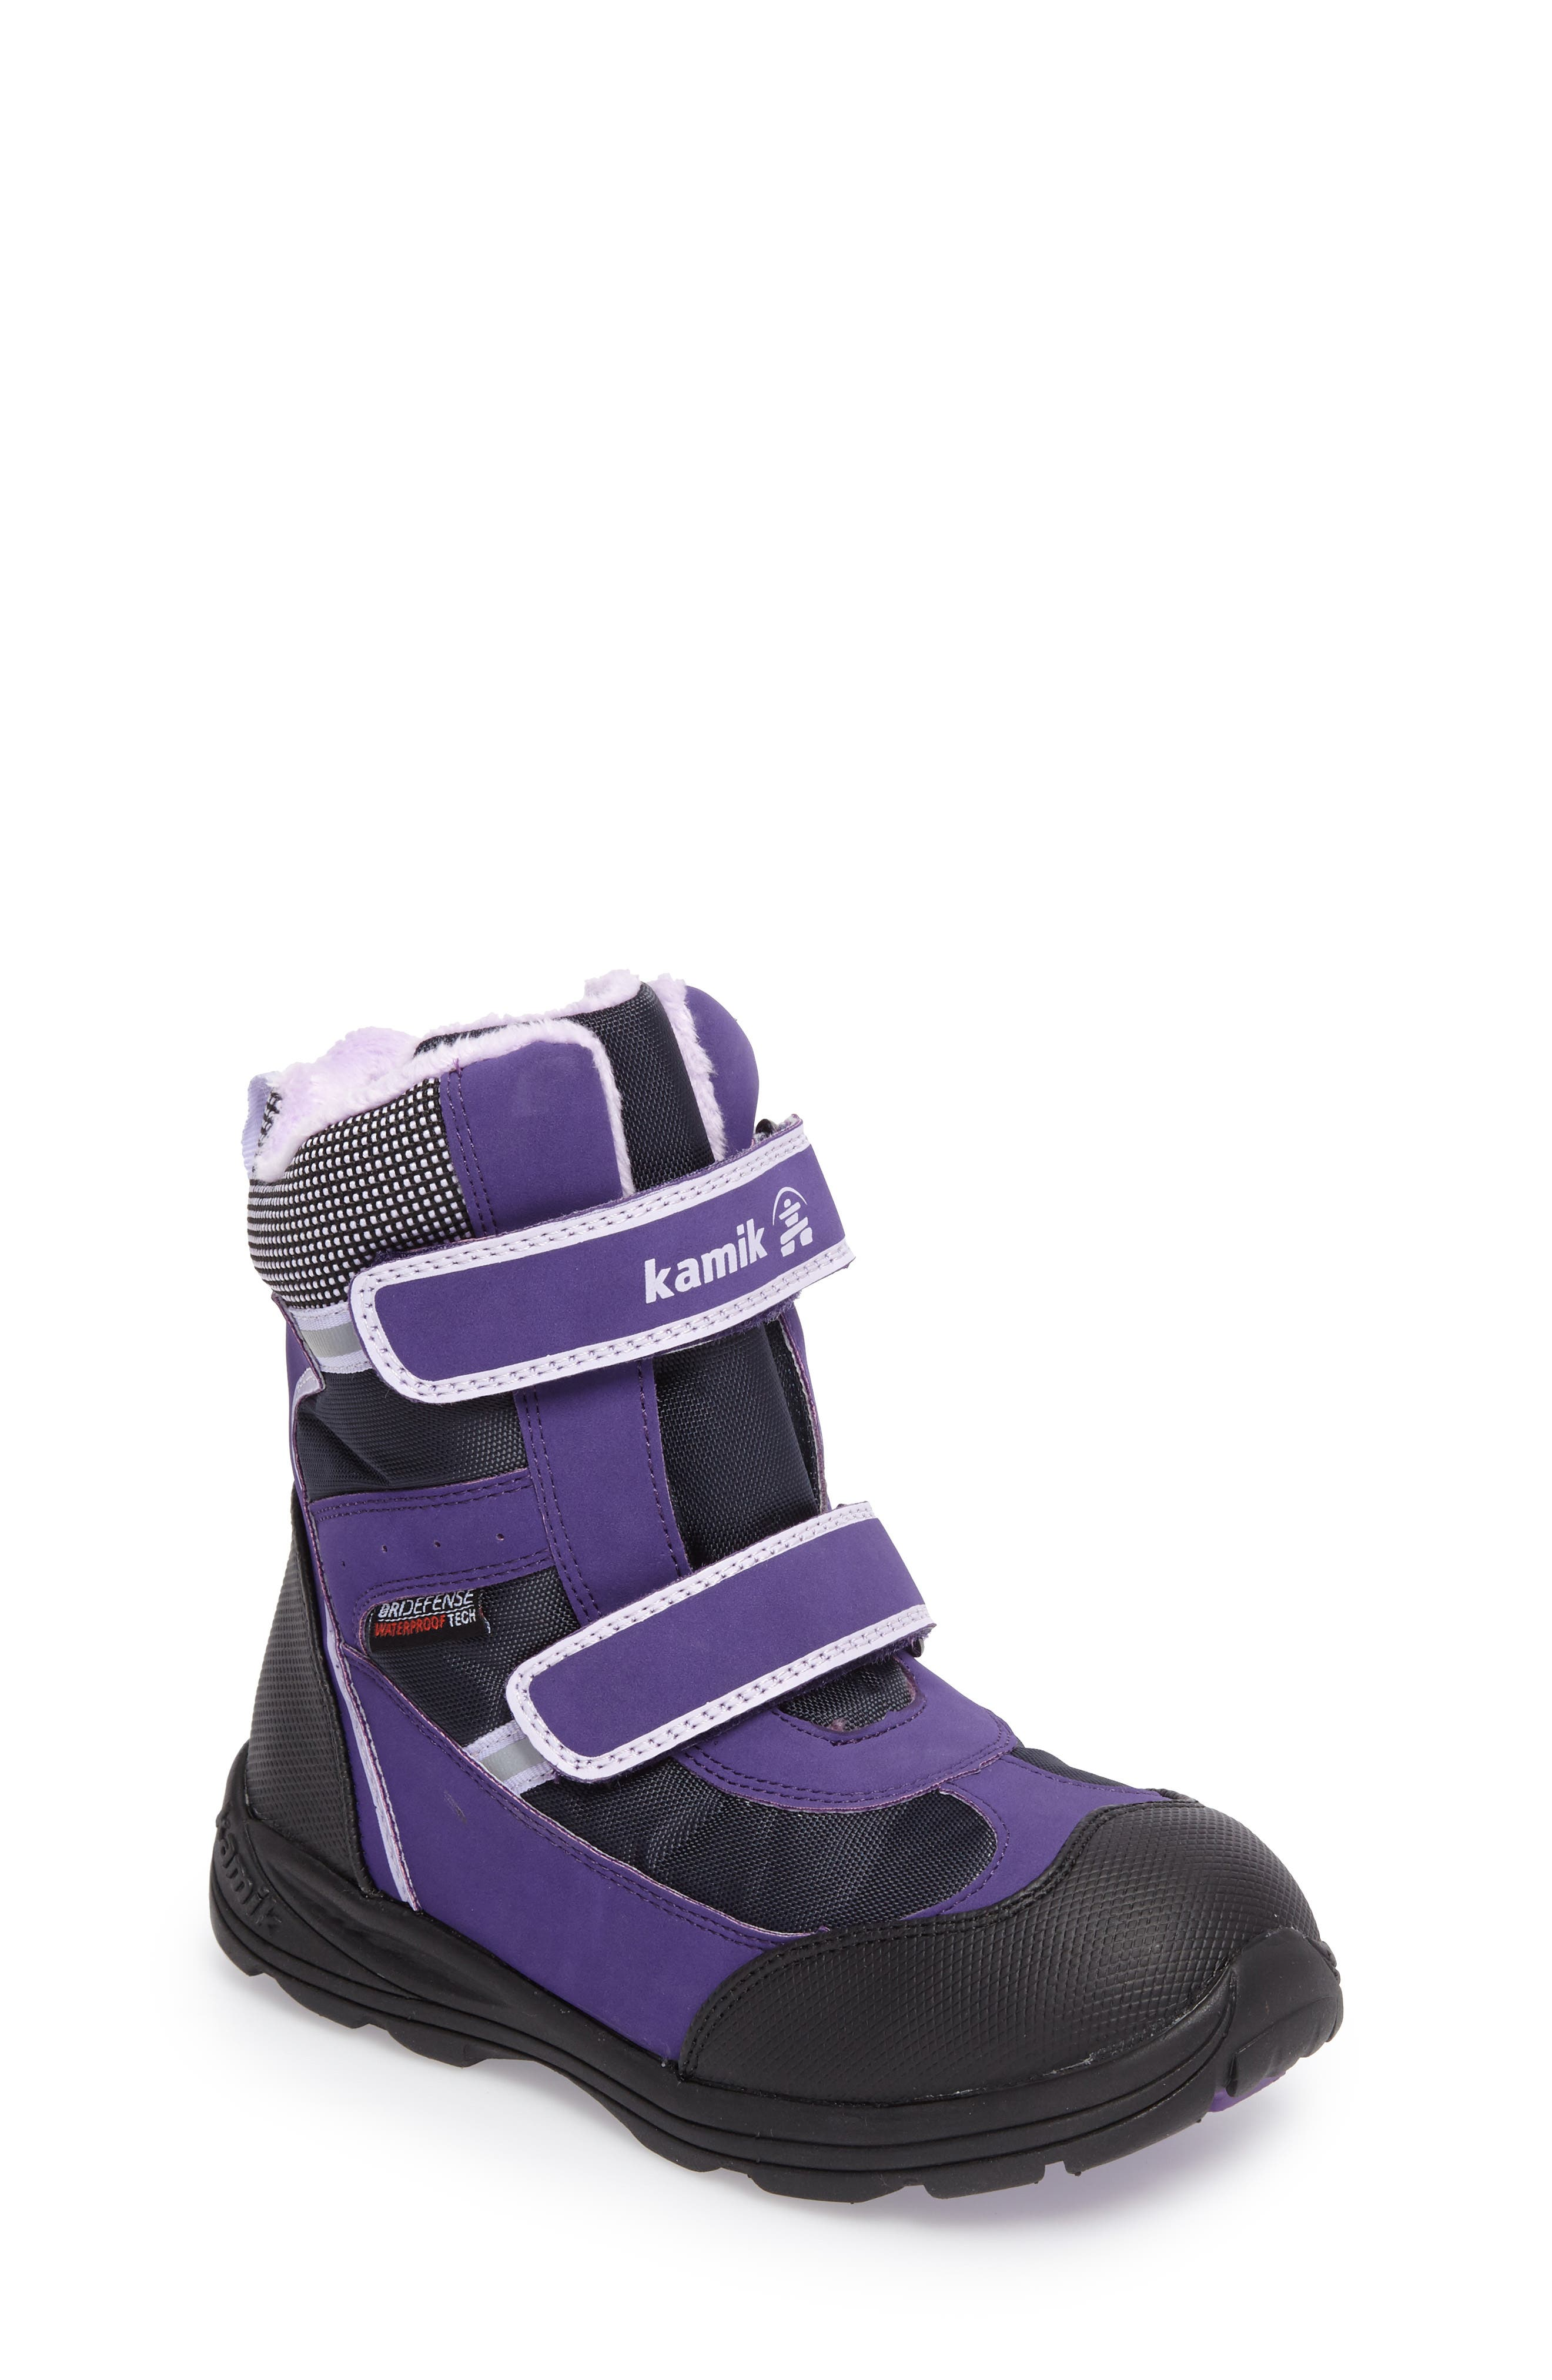 Main Image - Kamik Slate Snow Boot (Toddler, Little Kid & Big Kid)